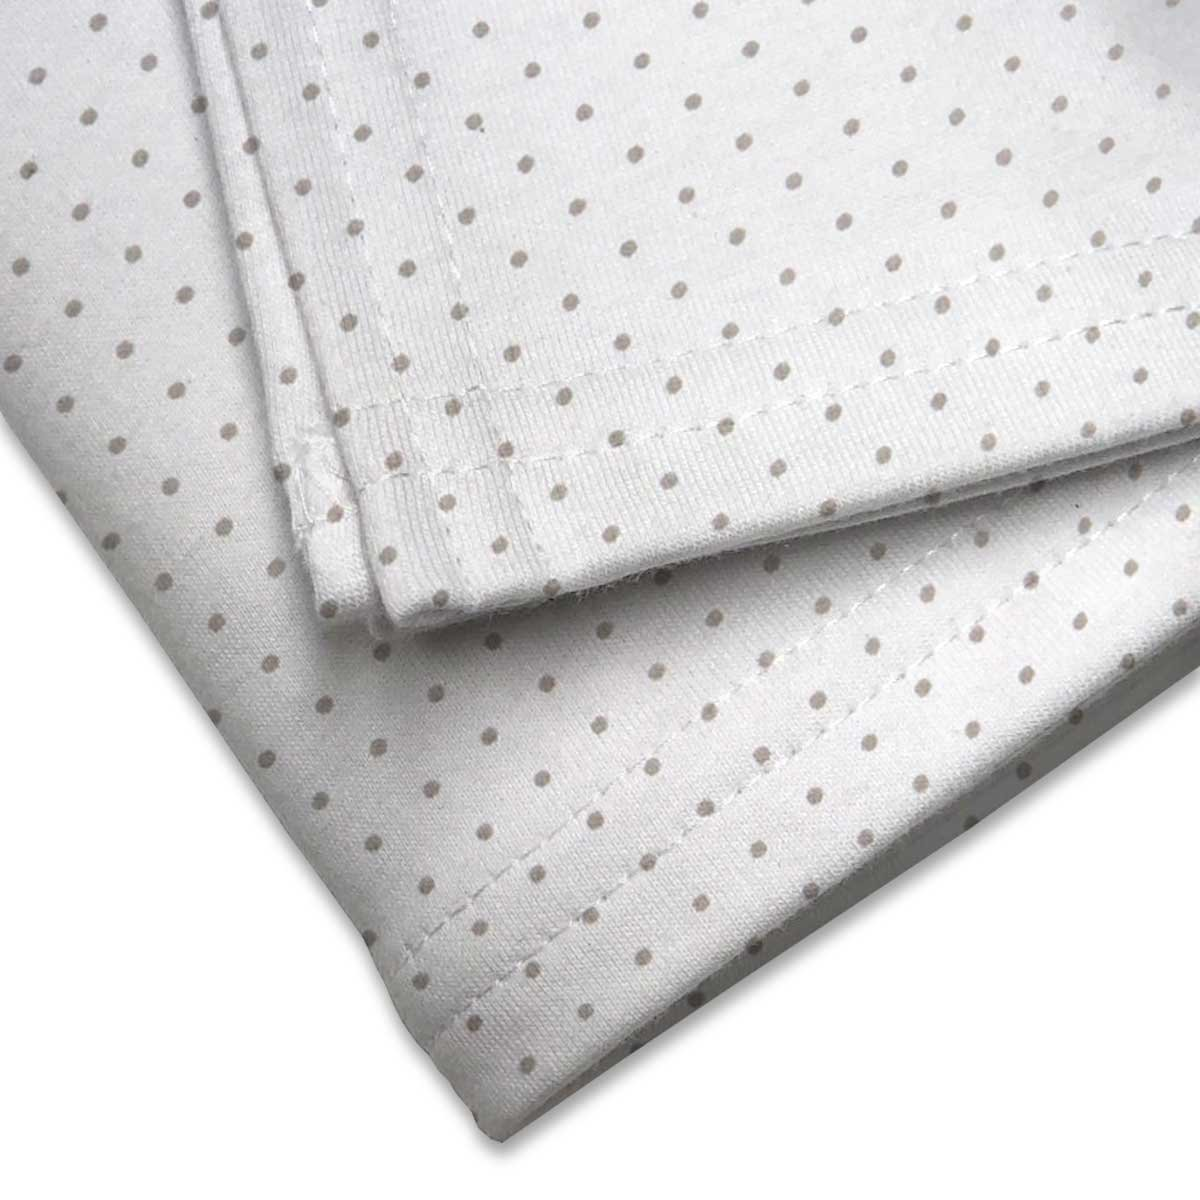 Made In USA SheetWorld Soft /& Stretchy Swaddle Blanket Blue Gingham Check